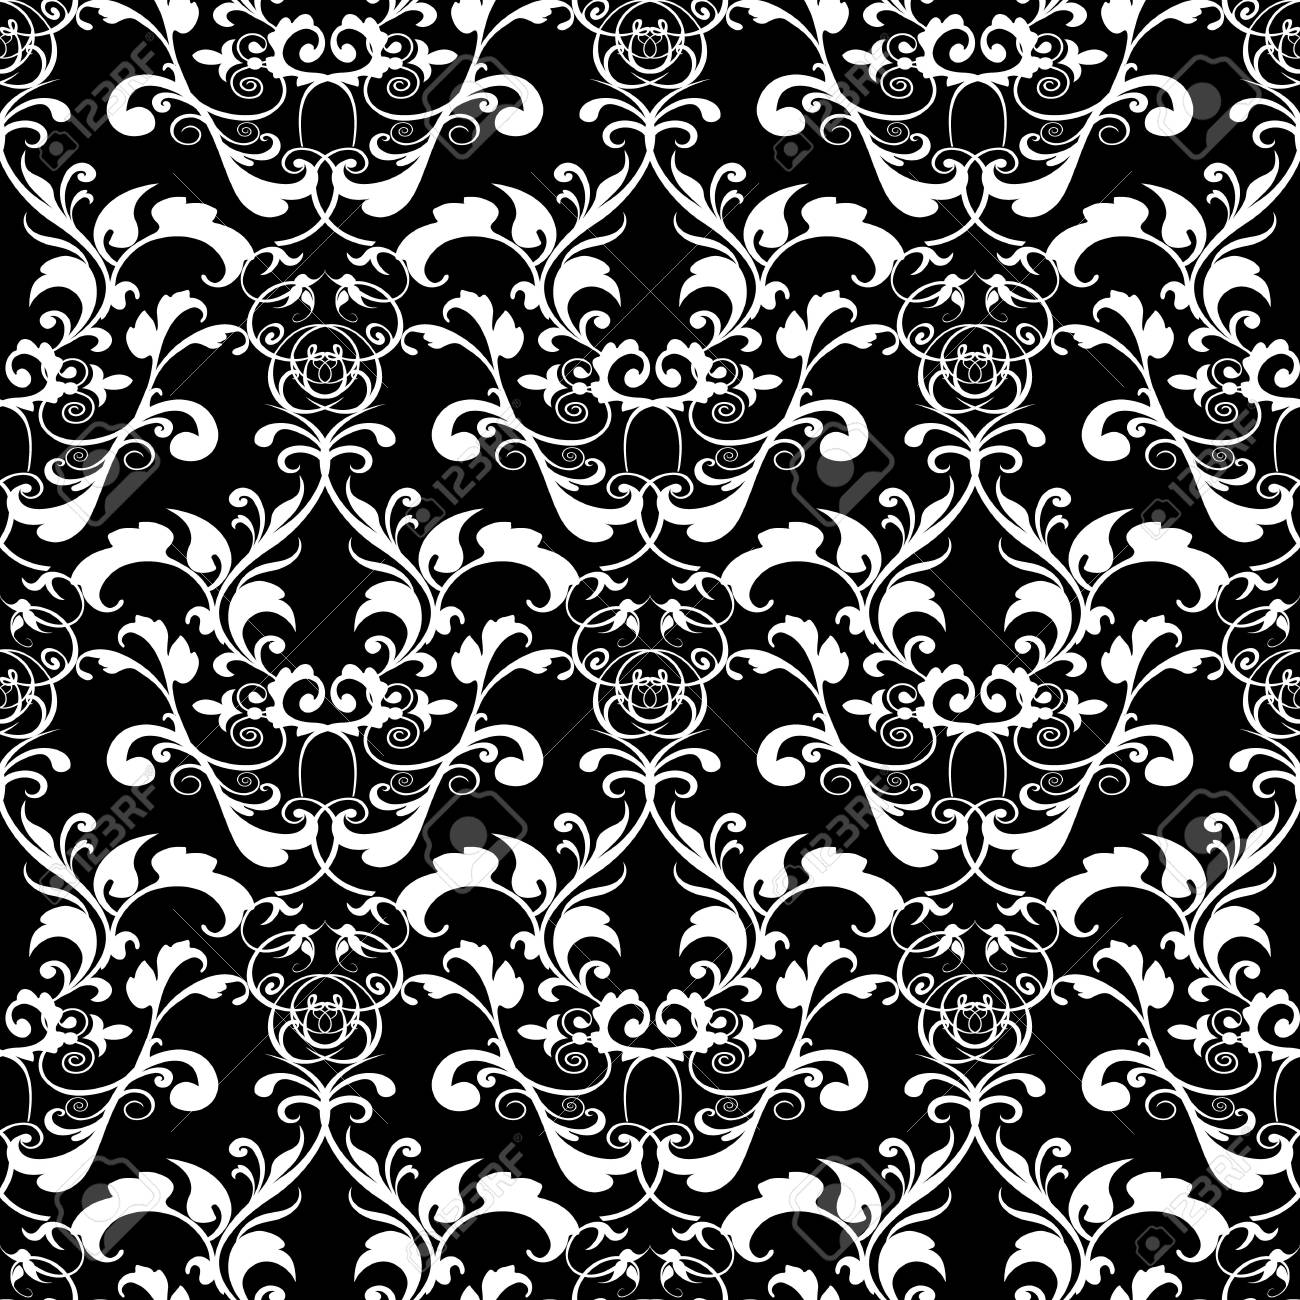 Baroque Black And White Vector Seamless Pattern Isolated Texture Vintage Floral Background Wallpaper With